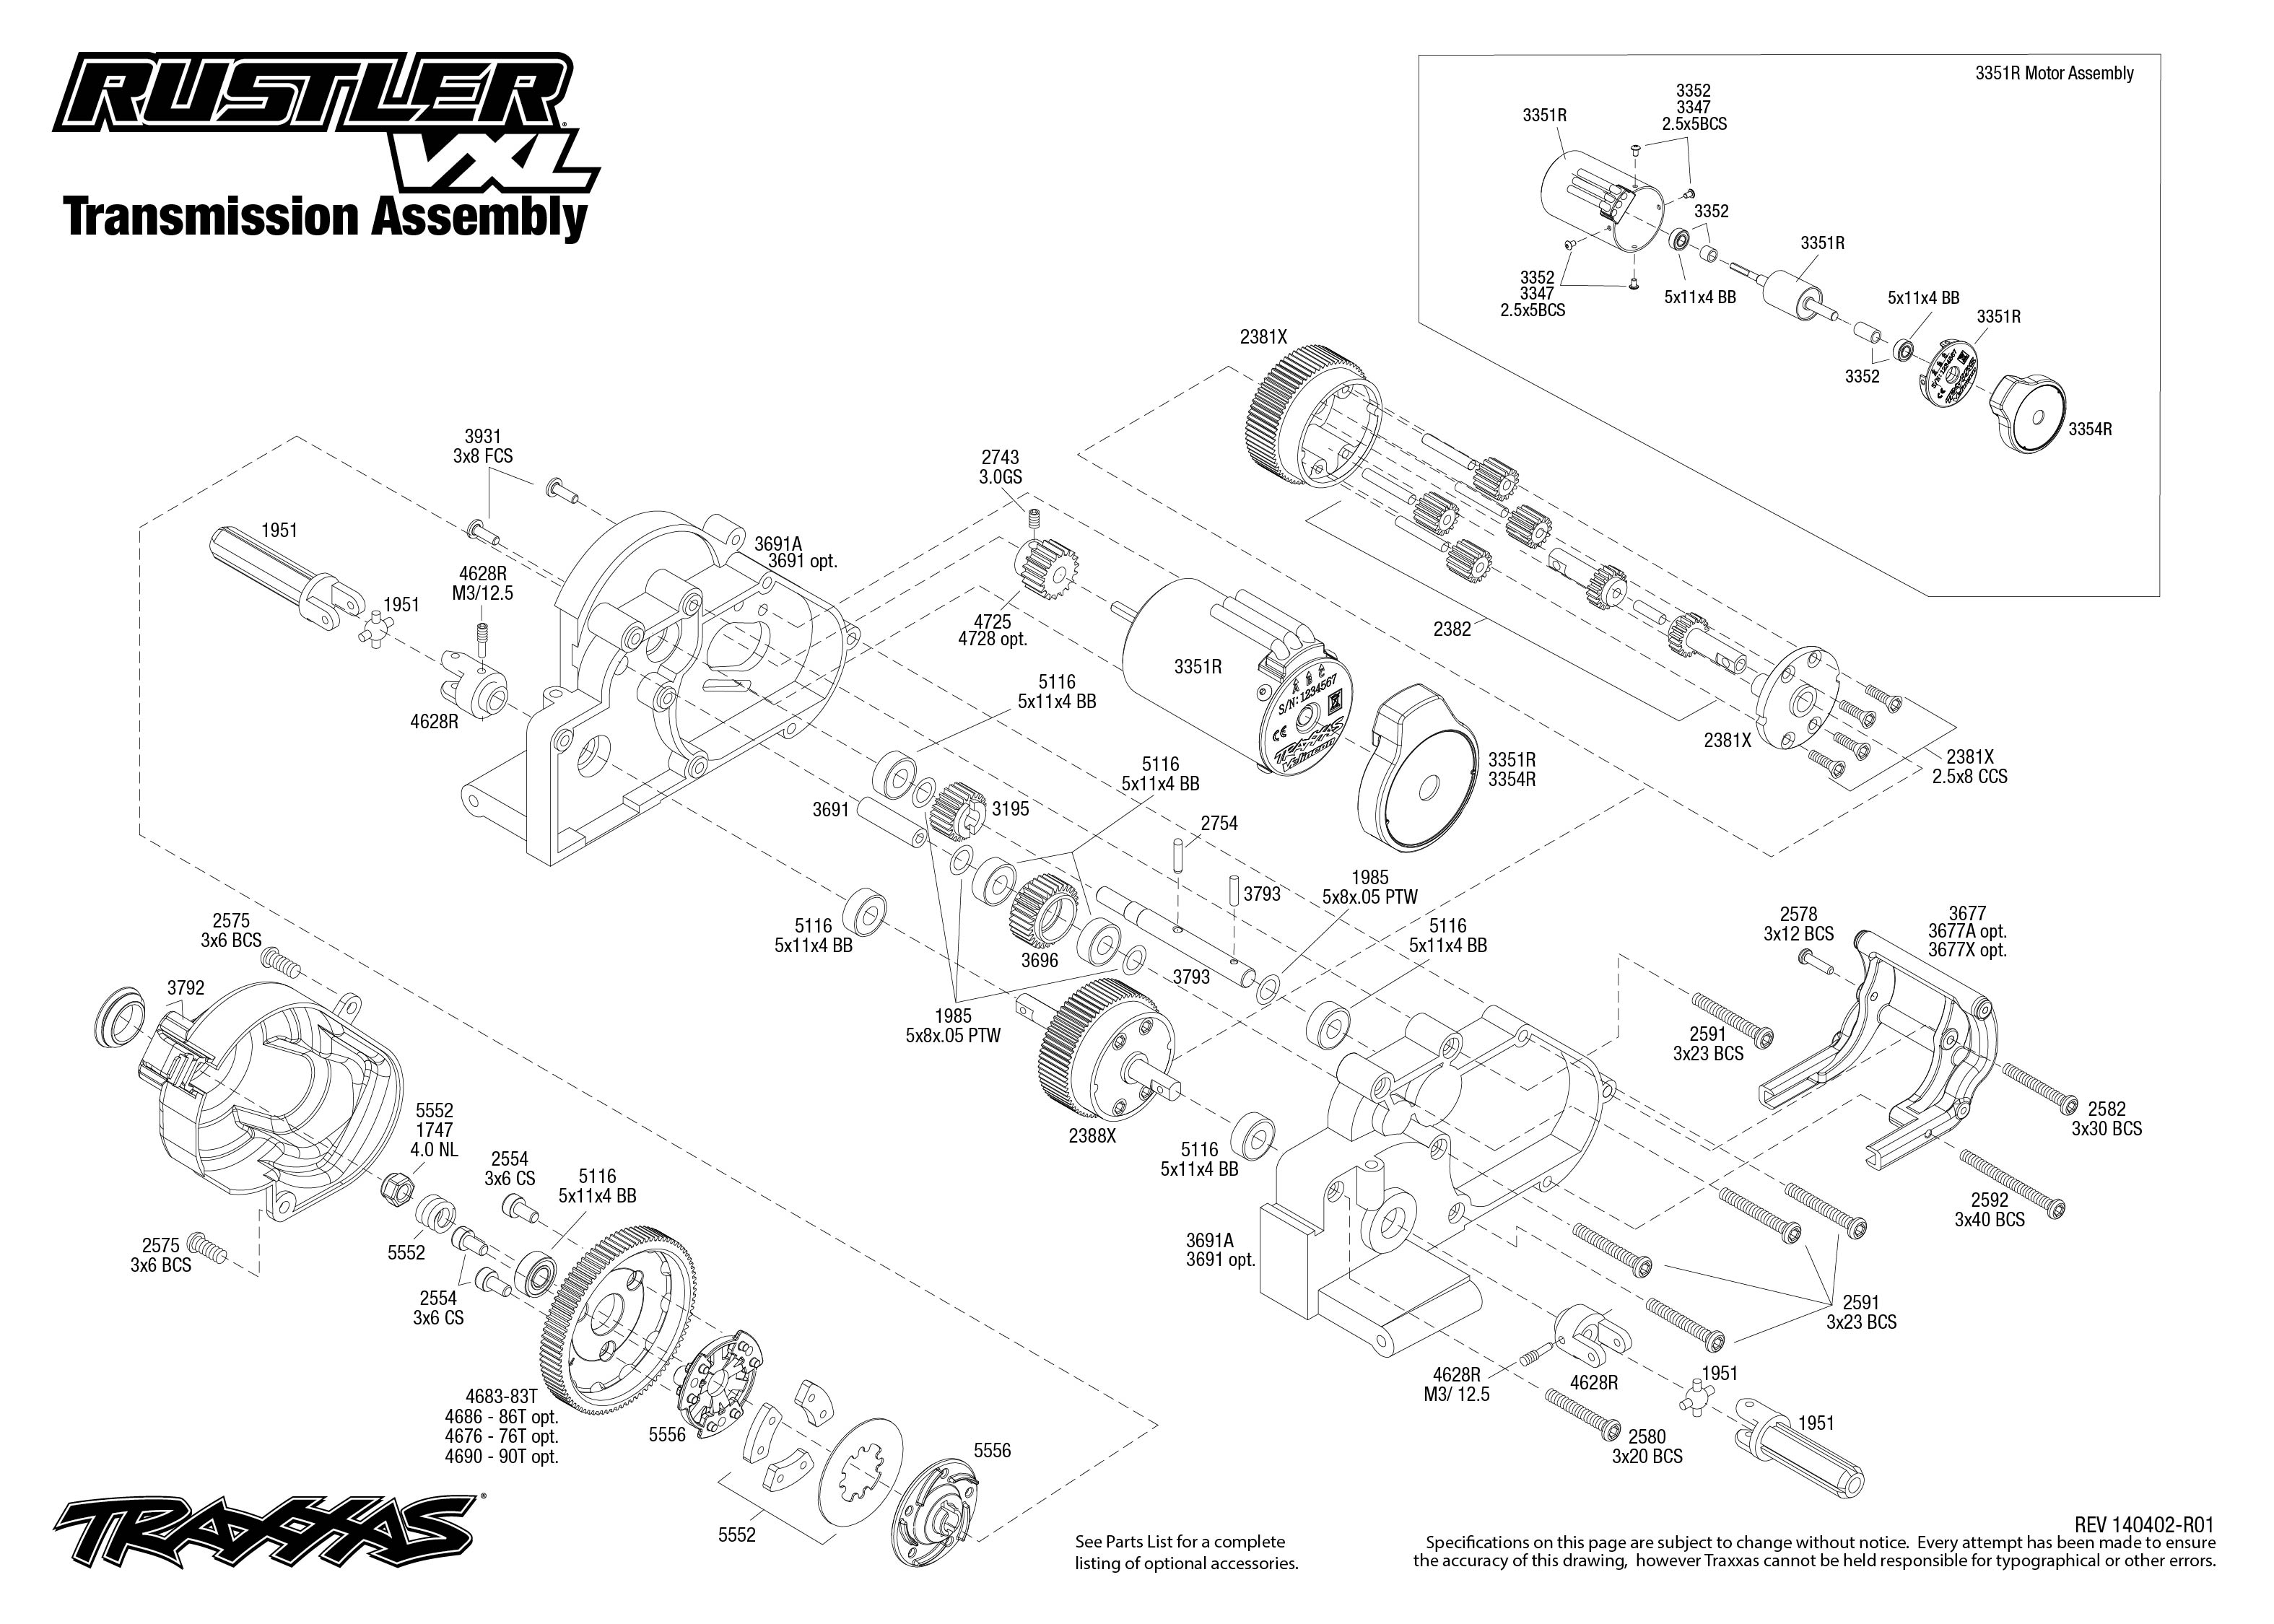 Rustler Vxl Transmission Assembly